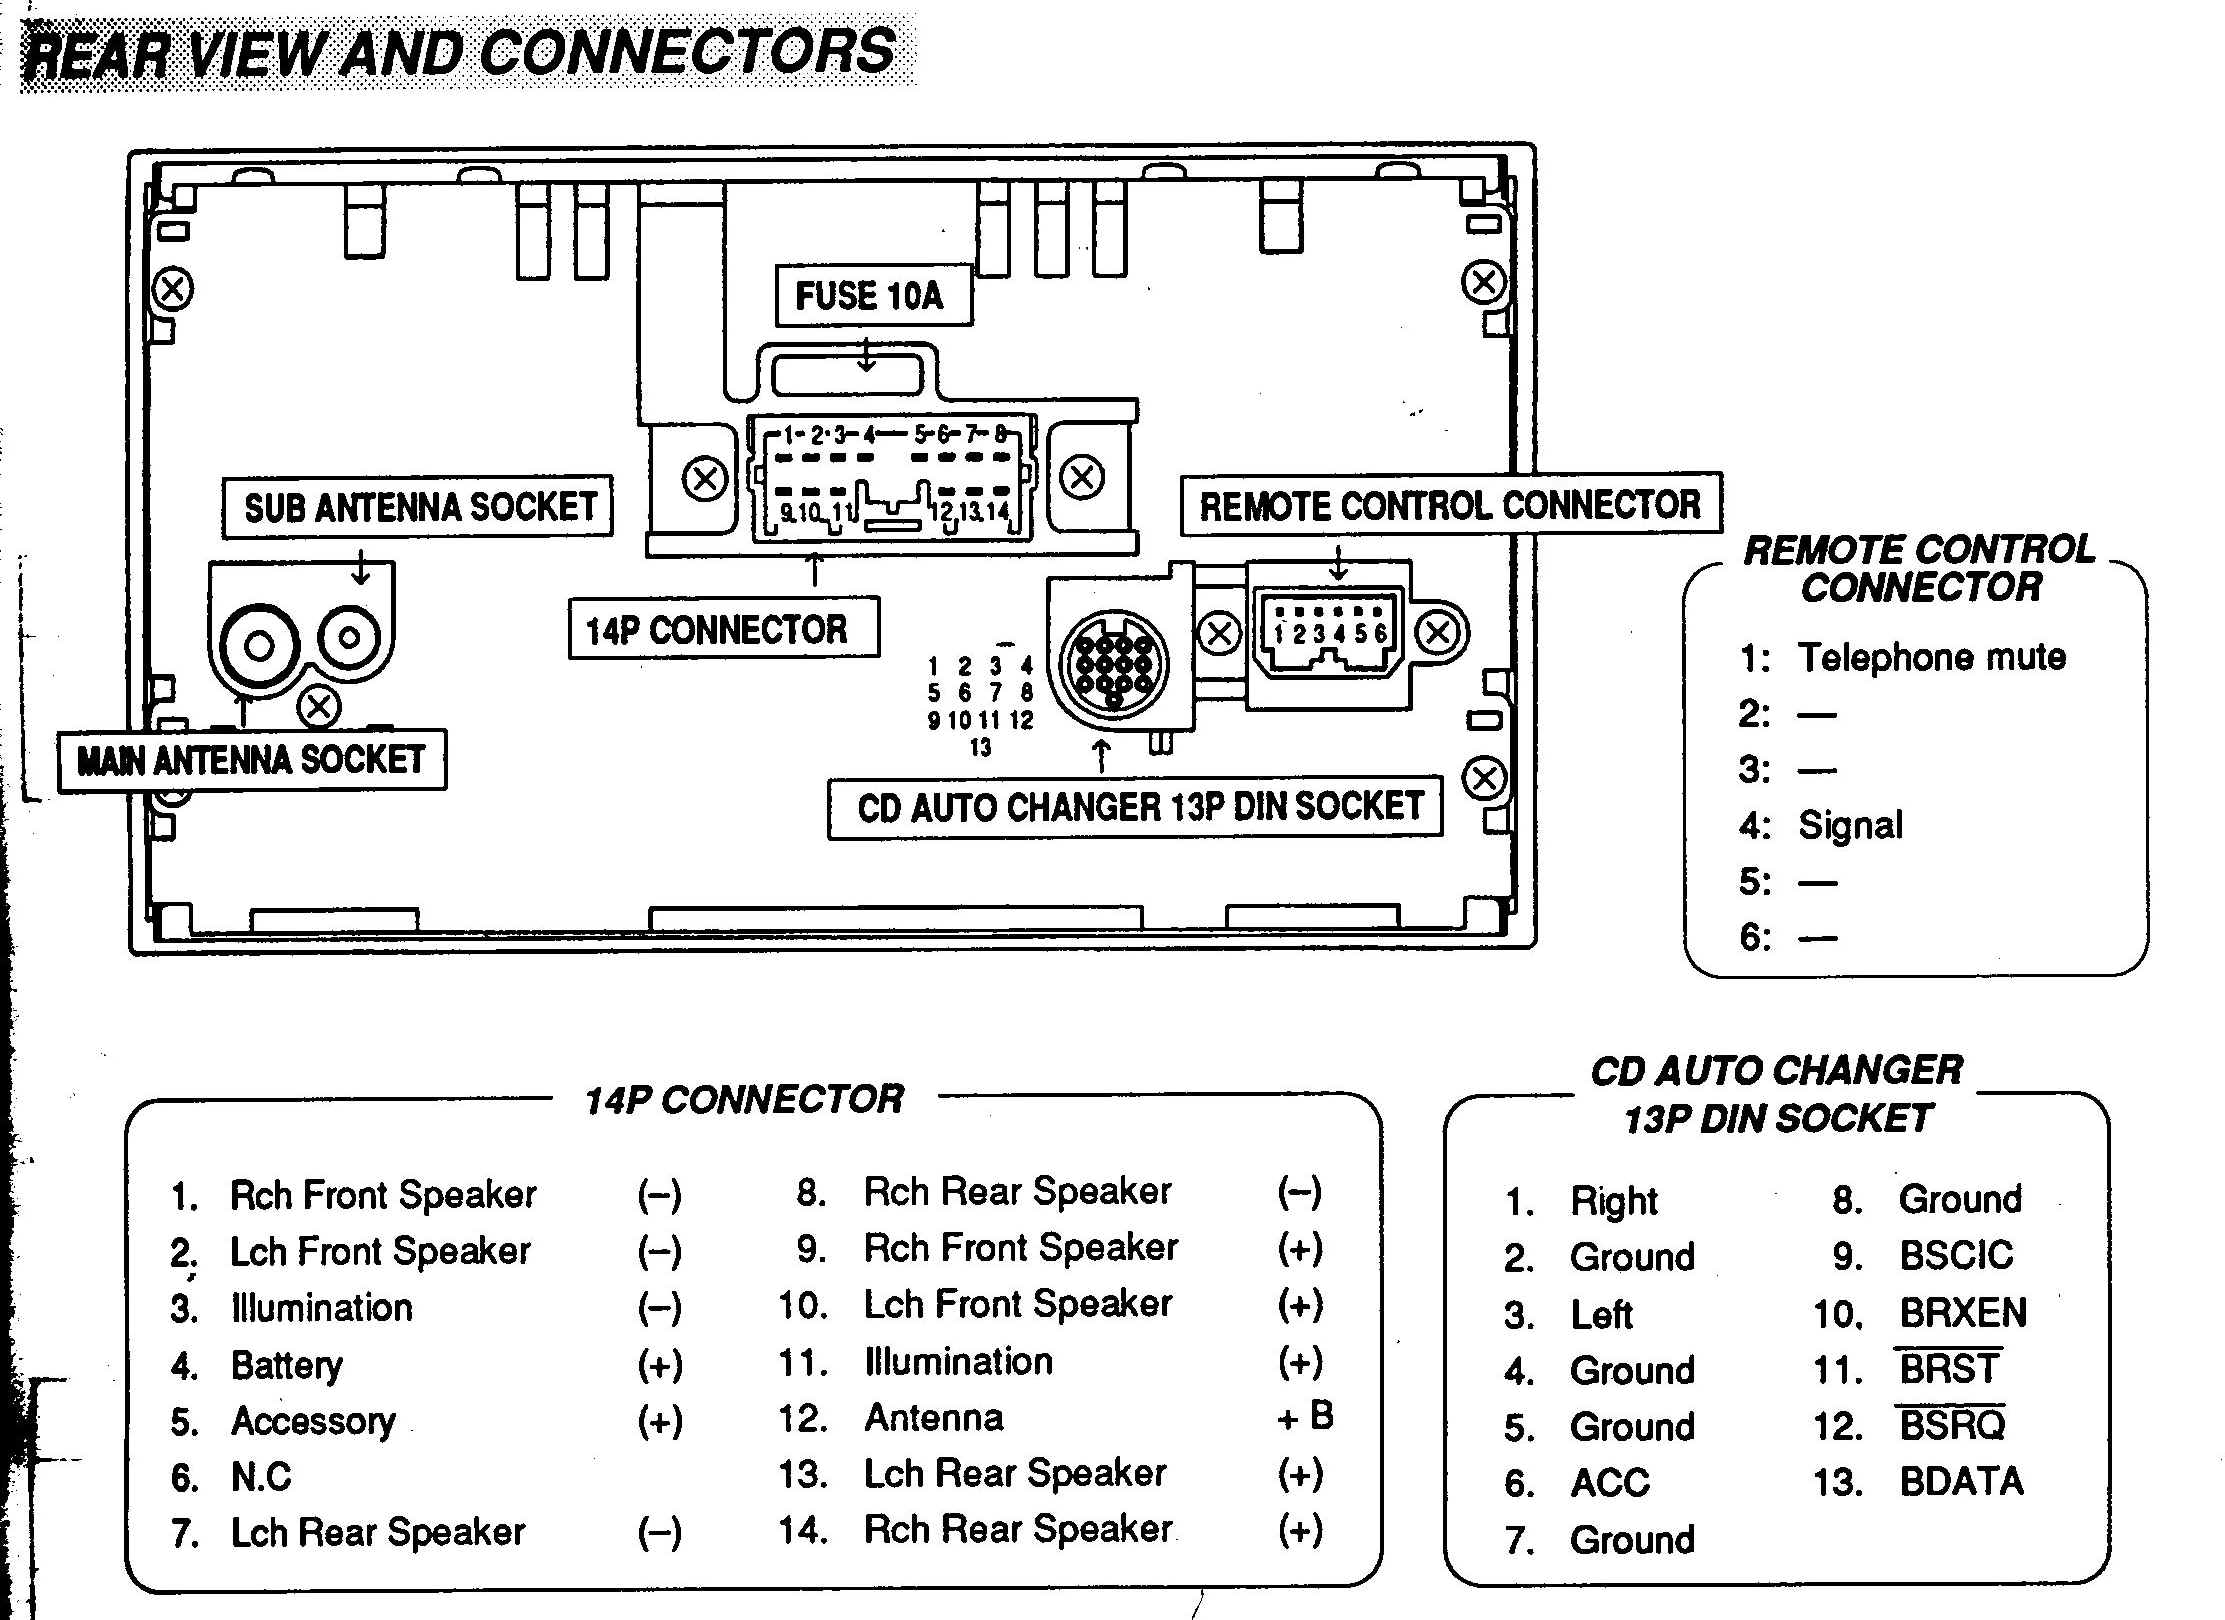 WireHarnessMit121003 car audio wiring diagram electrical wiring diagrams \u2022 free wiring 2008 mazda 3 wiring diagram at alyssarenee.co